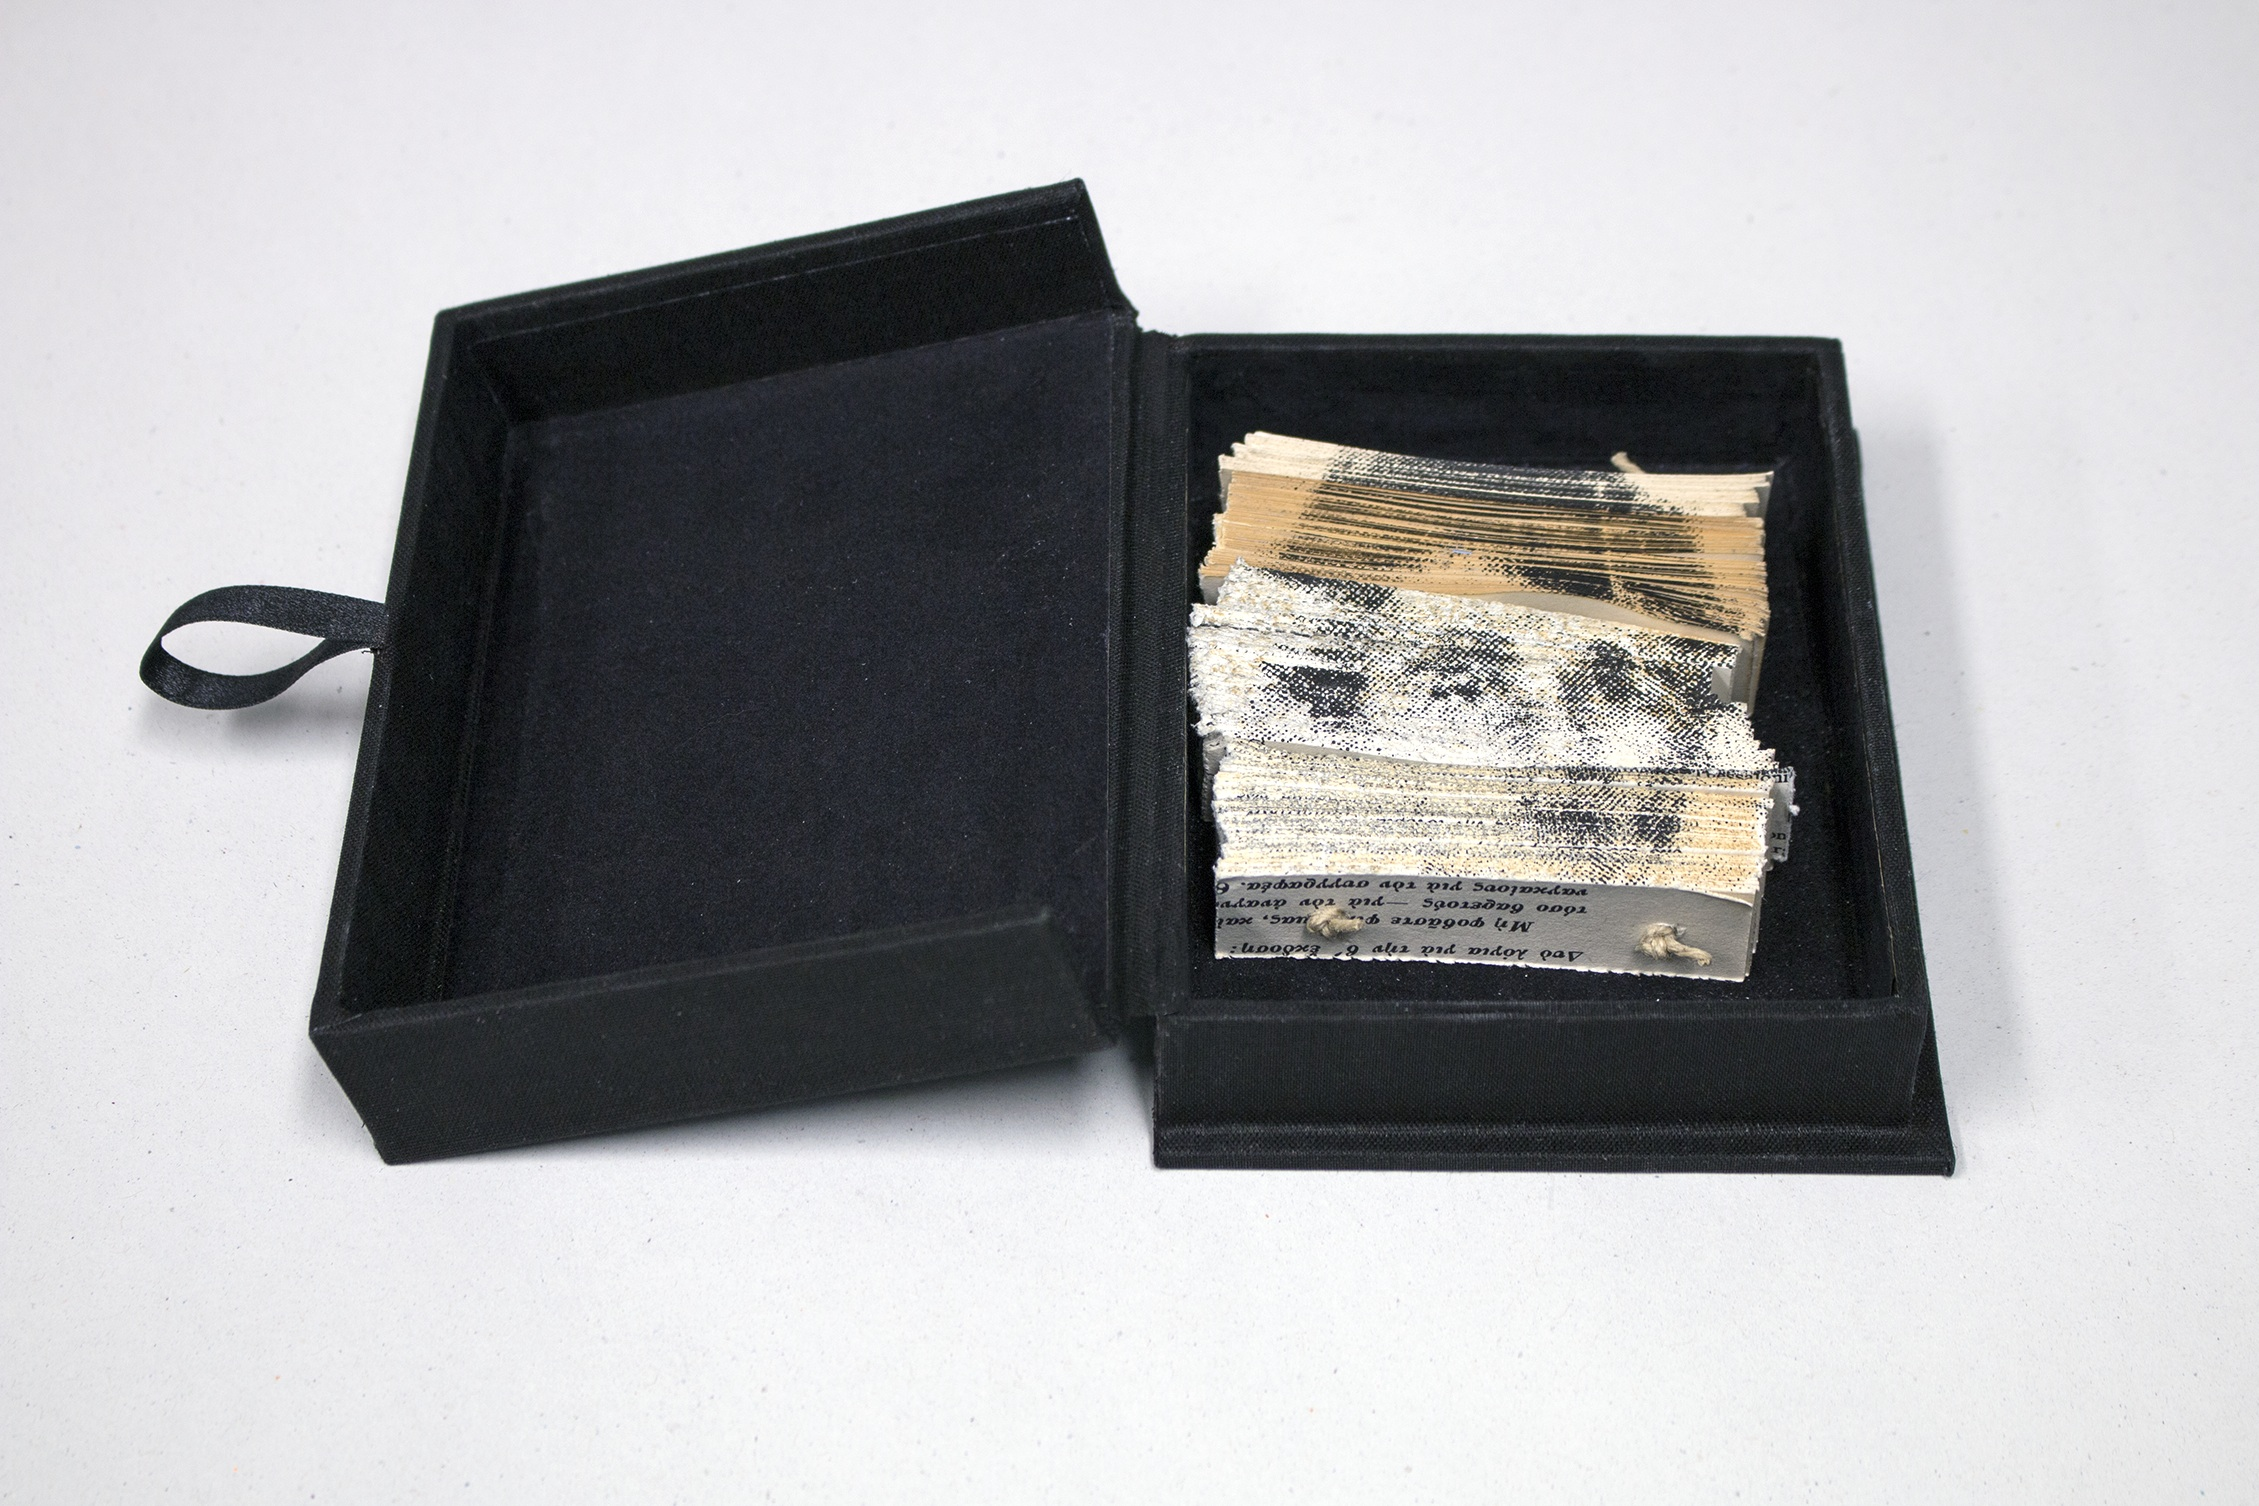 Ioannis Anastasiou   Kinotaphio  from the series  Koinotaphia (Common Graves) ,   2019 Artist book: Screenprint on book-objects created from hacked books, artist made box, and zinc label Box: 5 7/8 x 4 3/8 x 1 1/8 inches (closed) Printed and published by the artist Edition: Unique  Courtesy of the artist